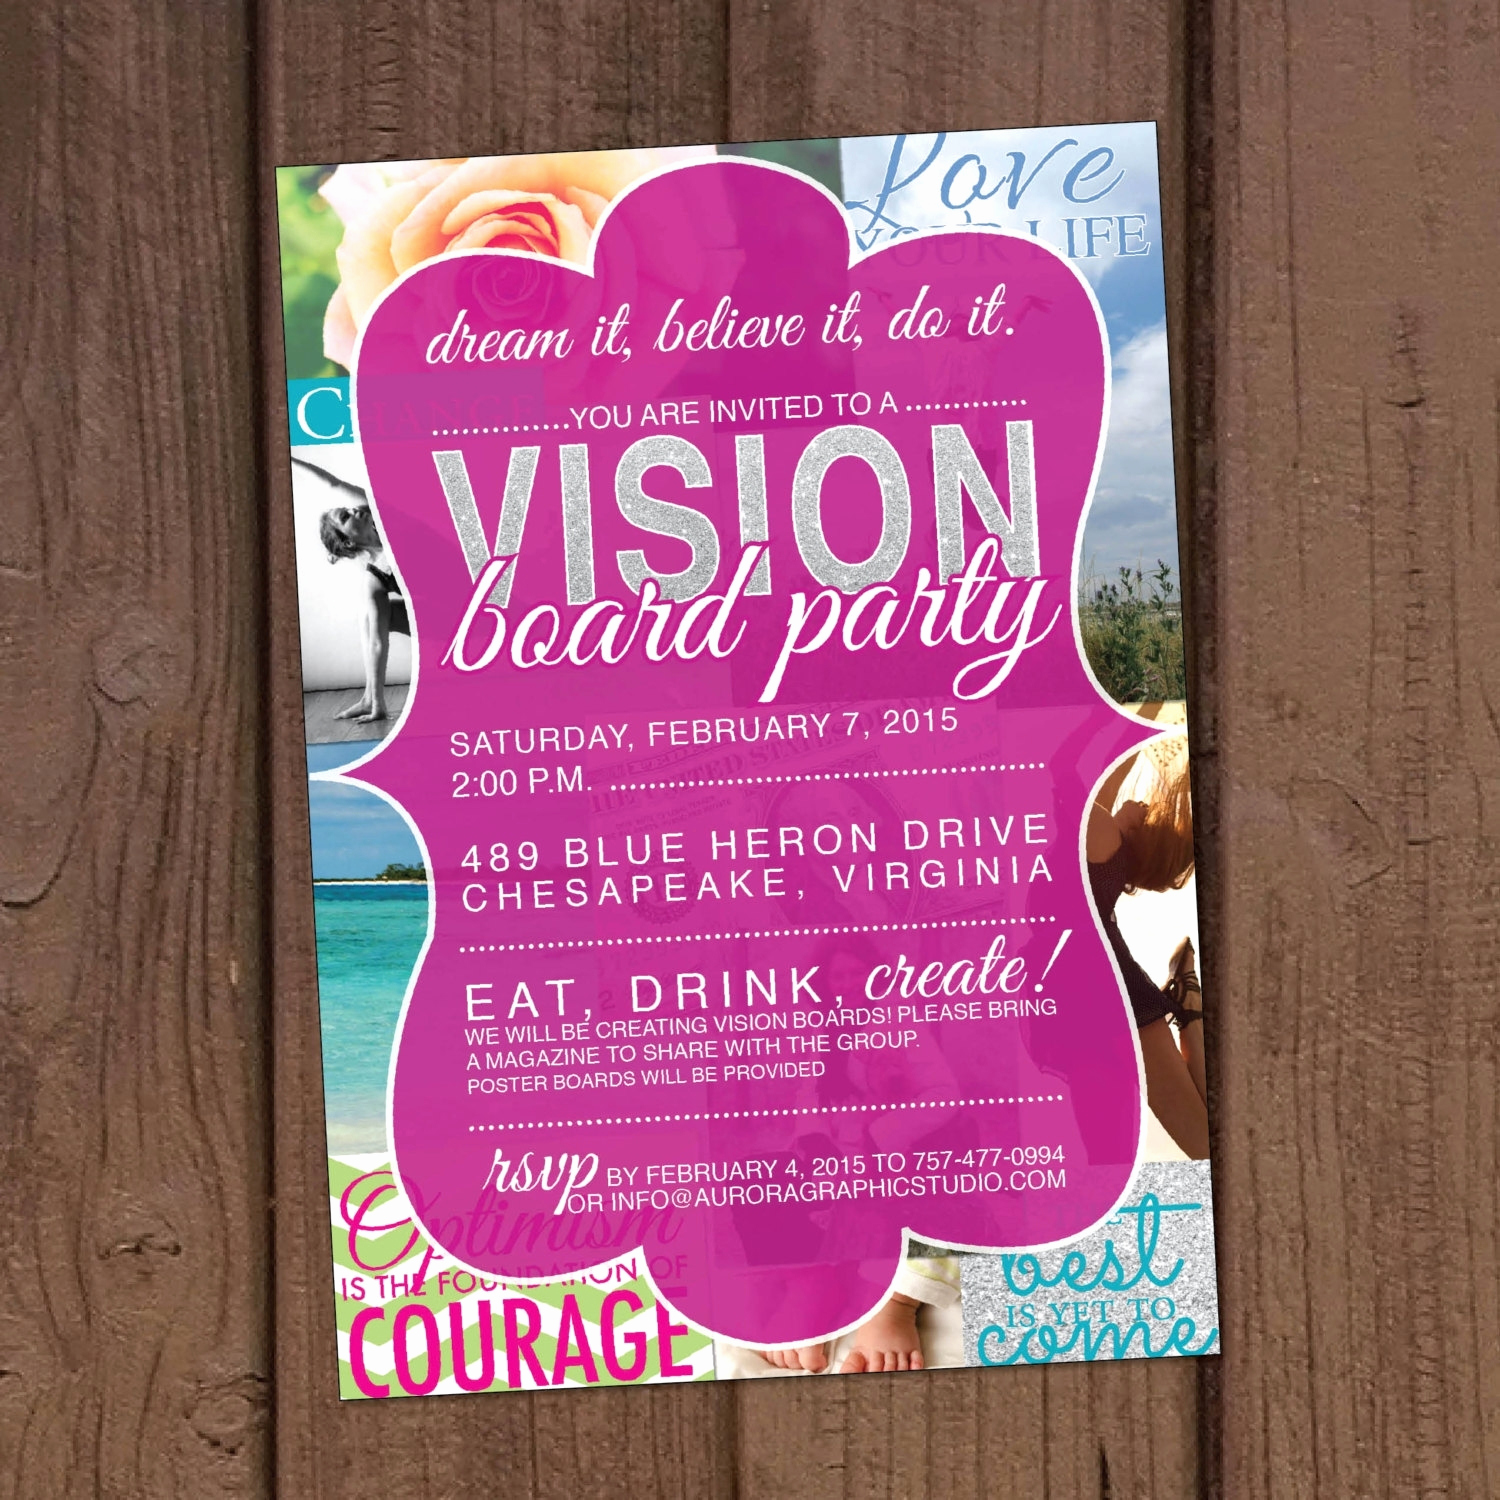 Vision Board Party Invitation Awesome Vision Board Party Invitation Cobypic